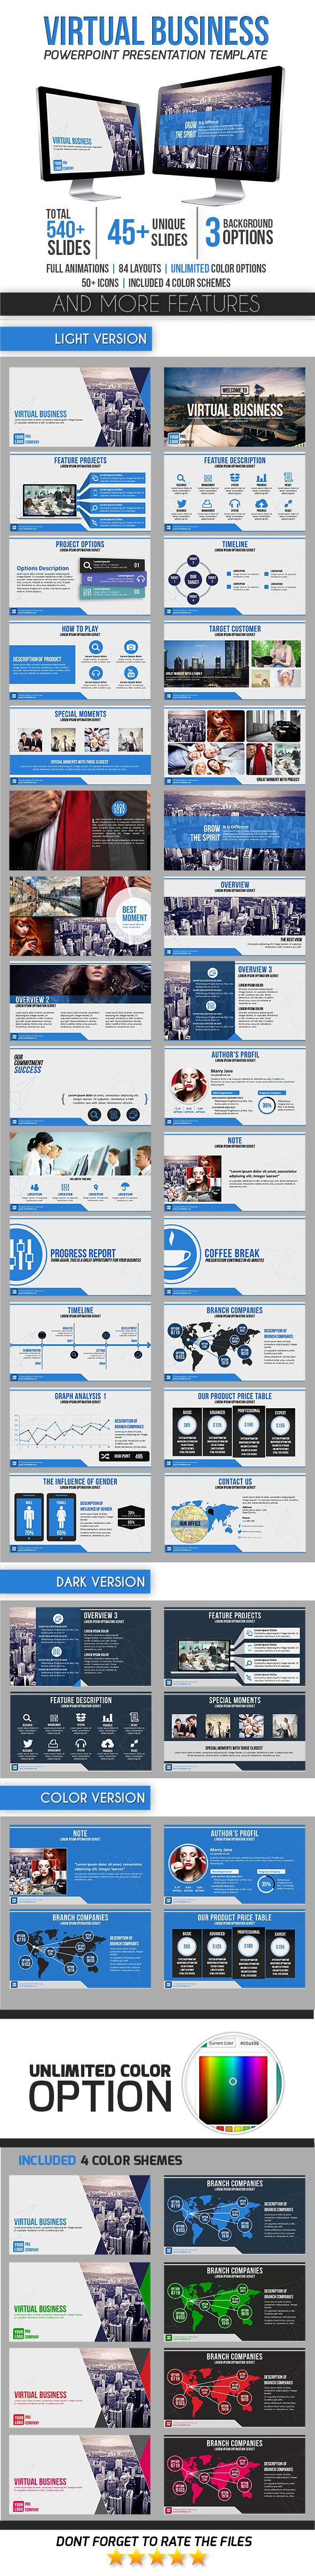 Virtual Business - PowerPoint Presentation Template Download: http://graphicriver.net/item/virtual-business/8713413?ref=PresentaKit